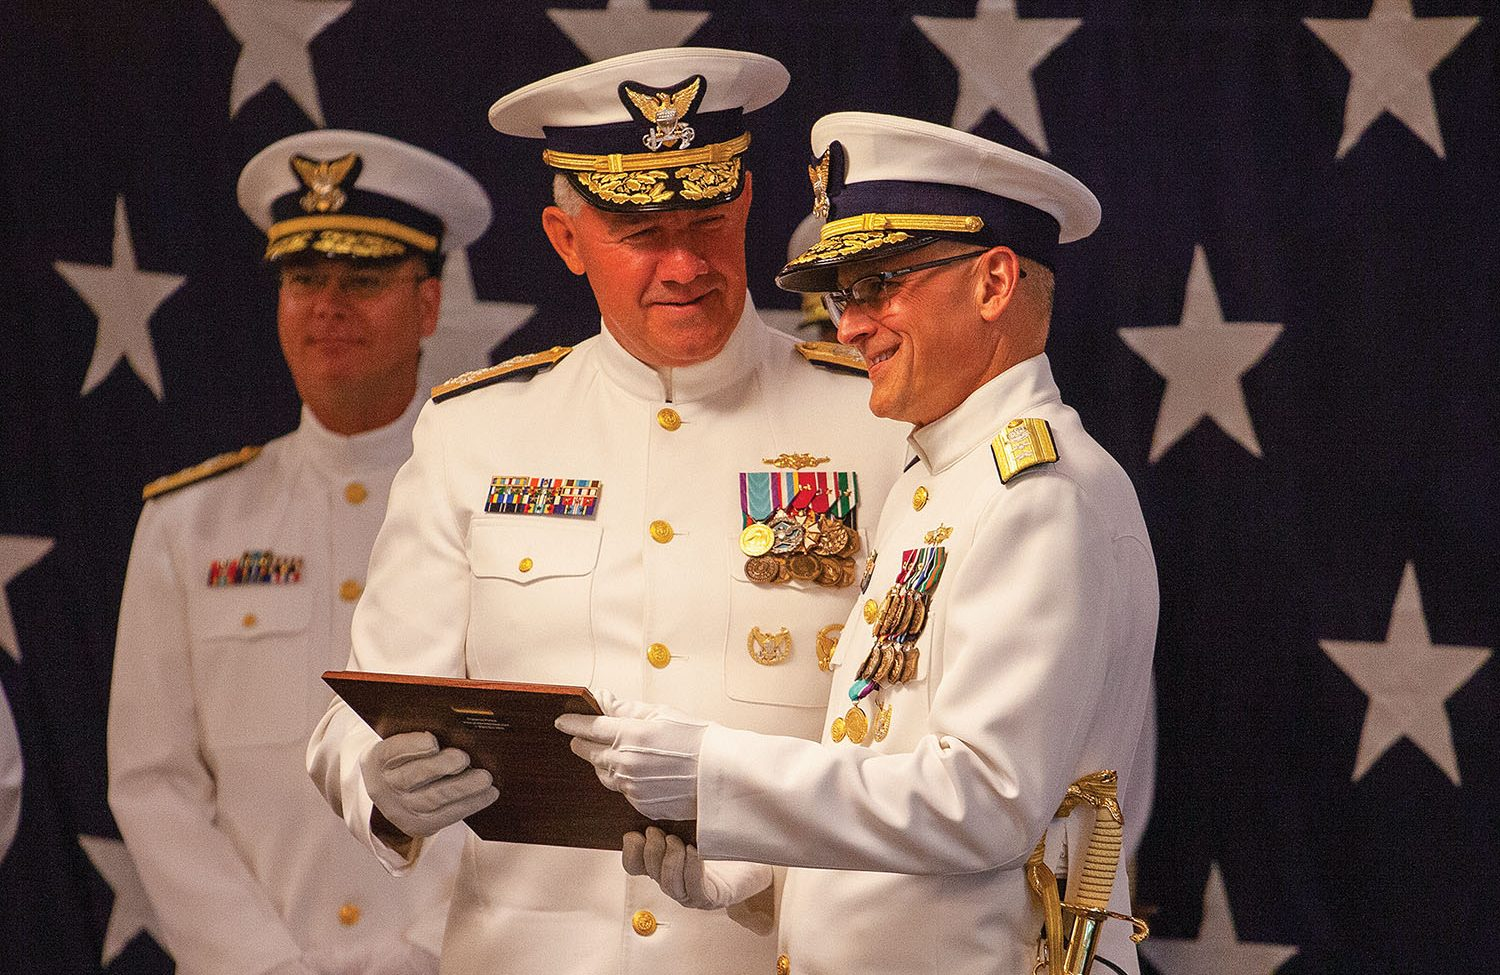 Adm. Karl Schultz (center) congratulates Rear Adm. John Nadeau (right) upon Nadeau's retirement from the Coast Guard June 25. Rear Adm. Richard Timme, who relieved Nadeau as commander of the Eighth Coast Guard District, looks on. (Photo by Frank McCormack)